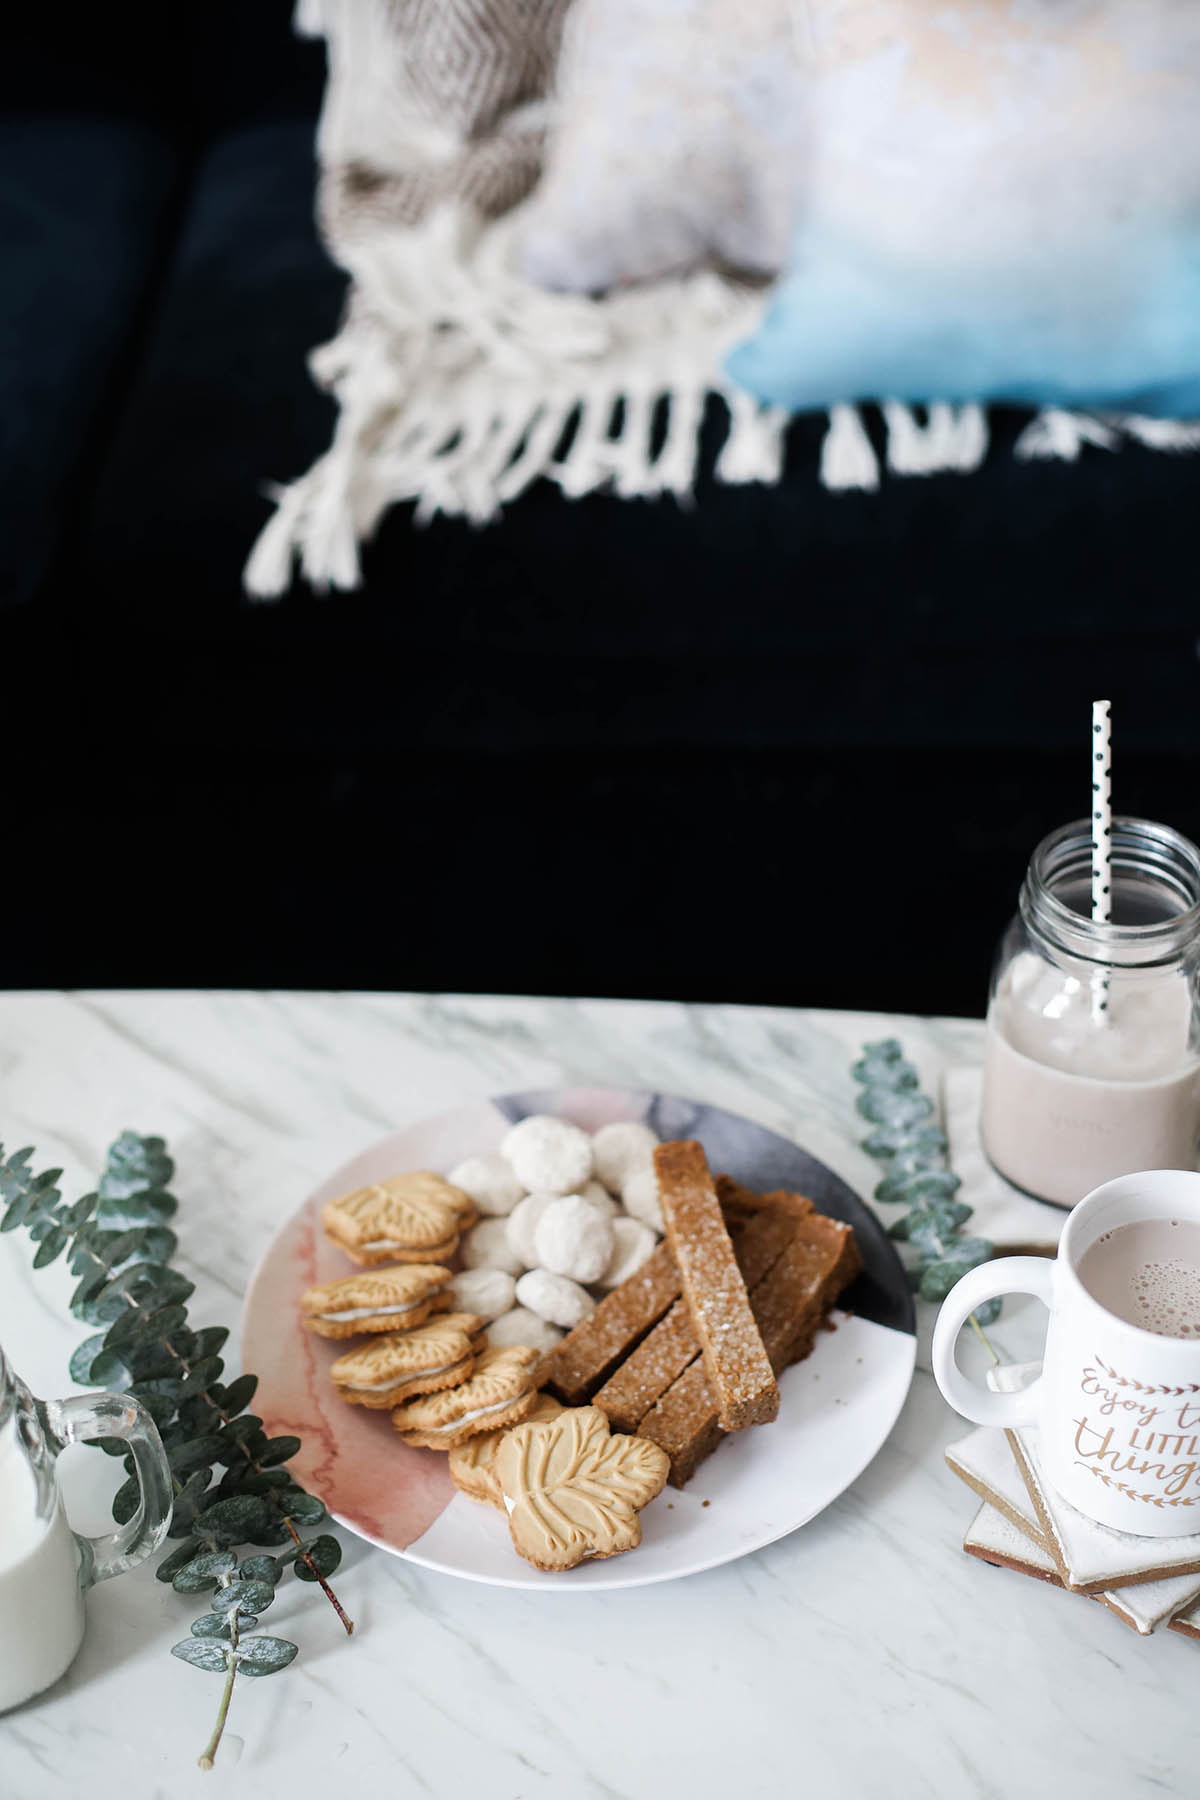 holiday cookies on shutterfly plates and shutterfly mugs